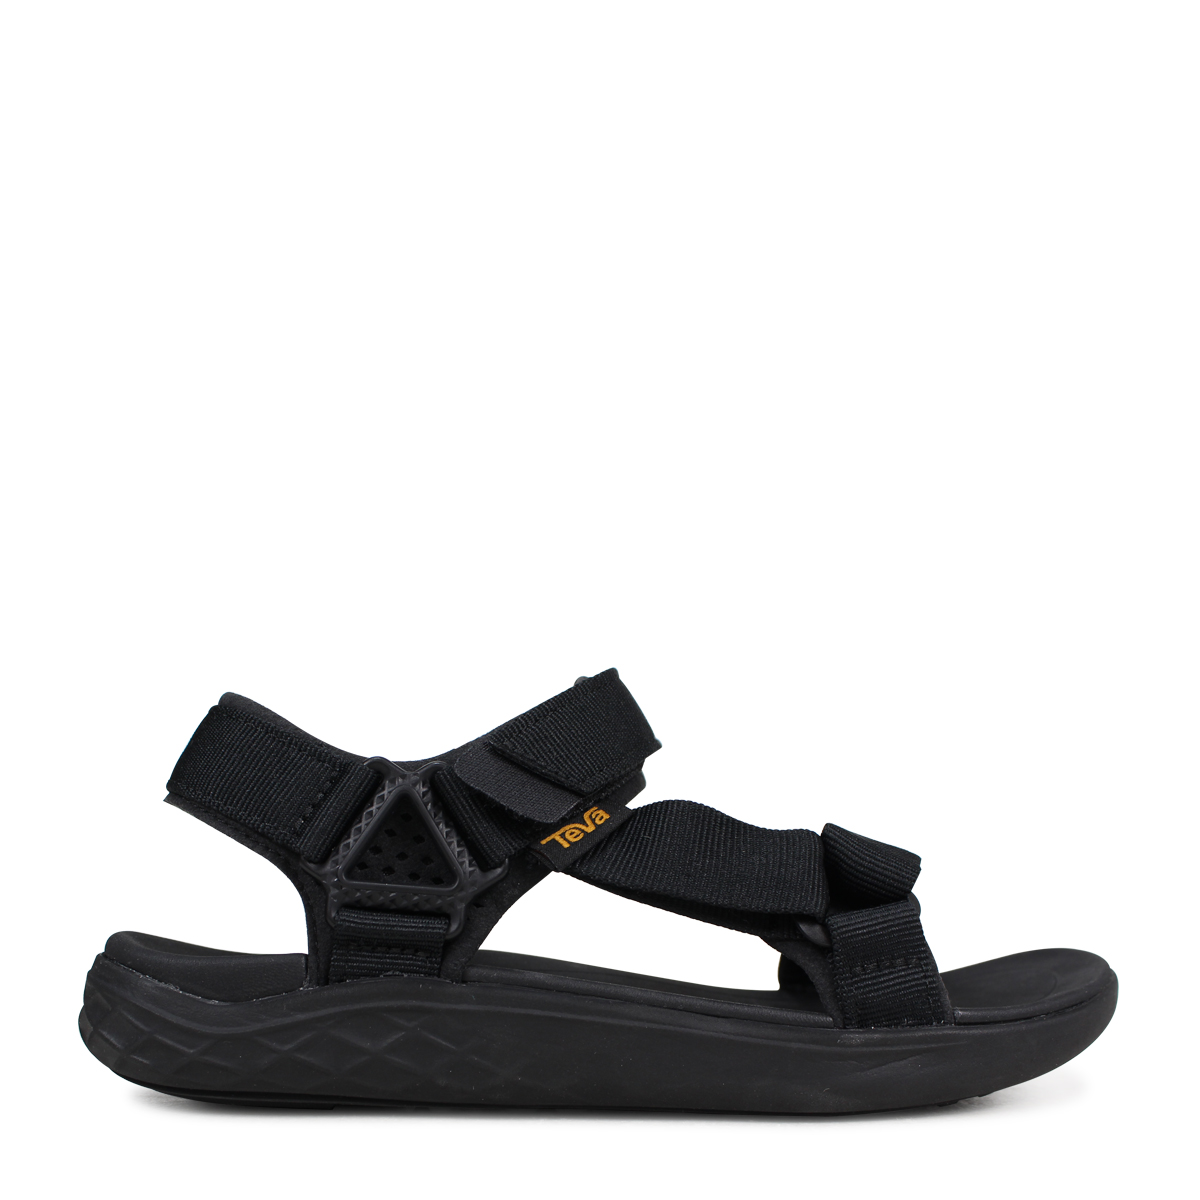 195a02638 Teva TERRA-FLOAT 2 UNIVERSAL Teva sandals Lady s terra float 2 universal  black 1091333  4 18 Shinnyu load   184